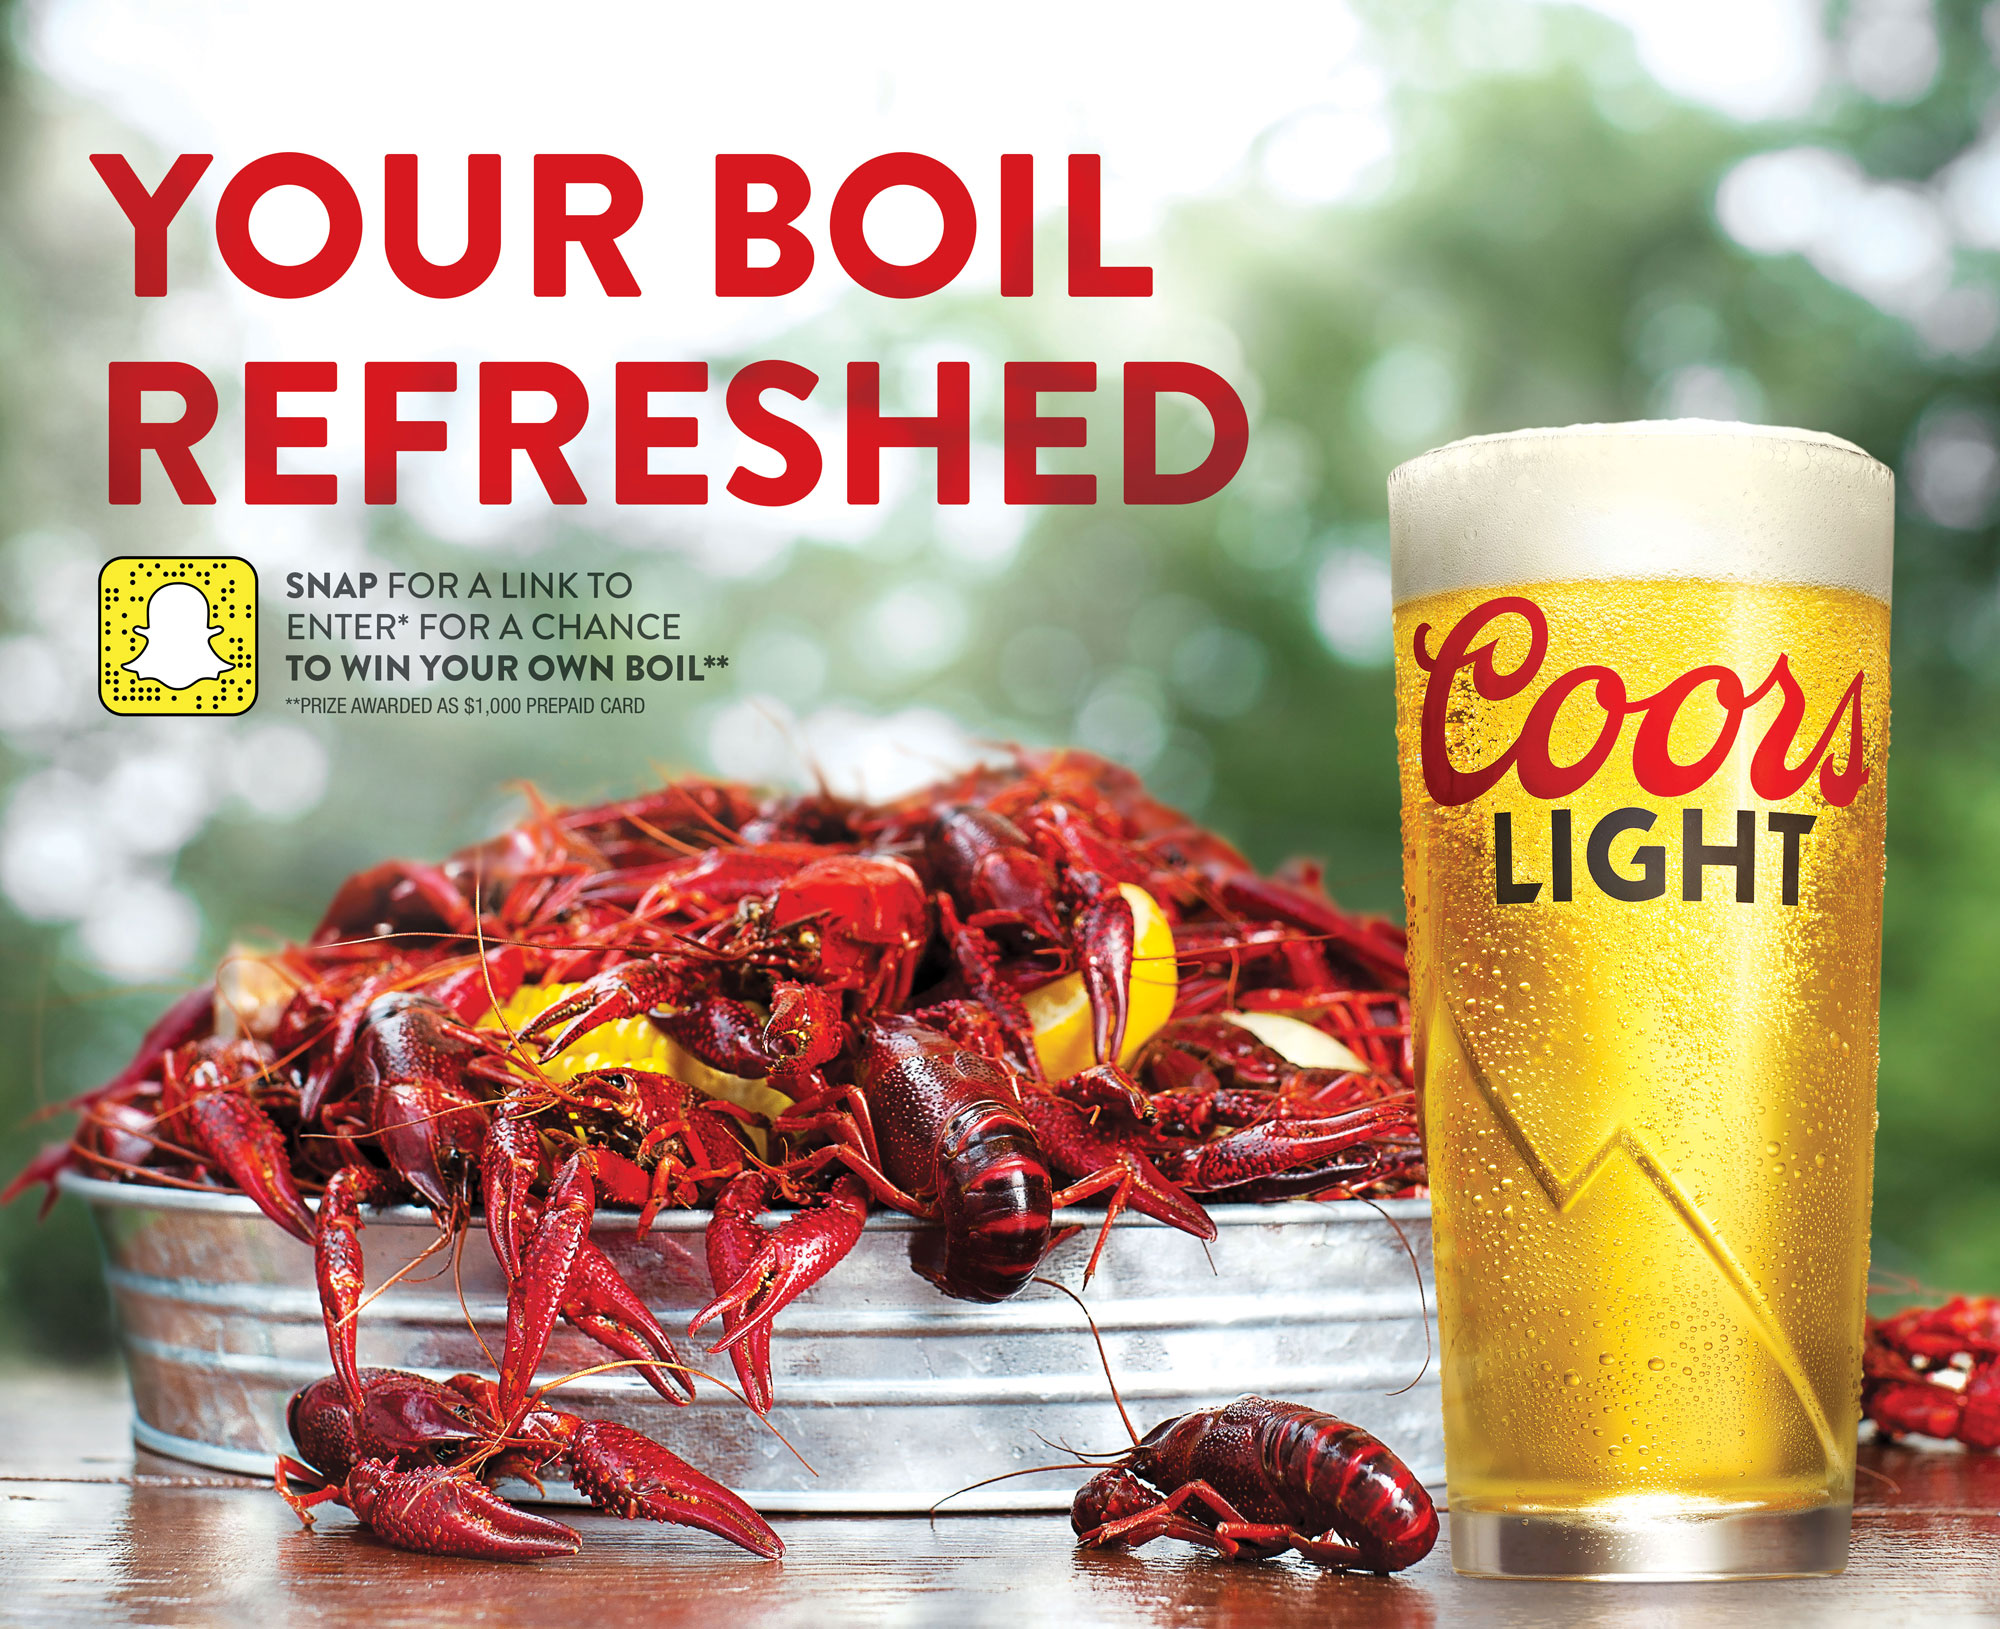 Coors Light Your Boil Refreshed